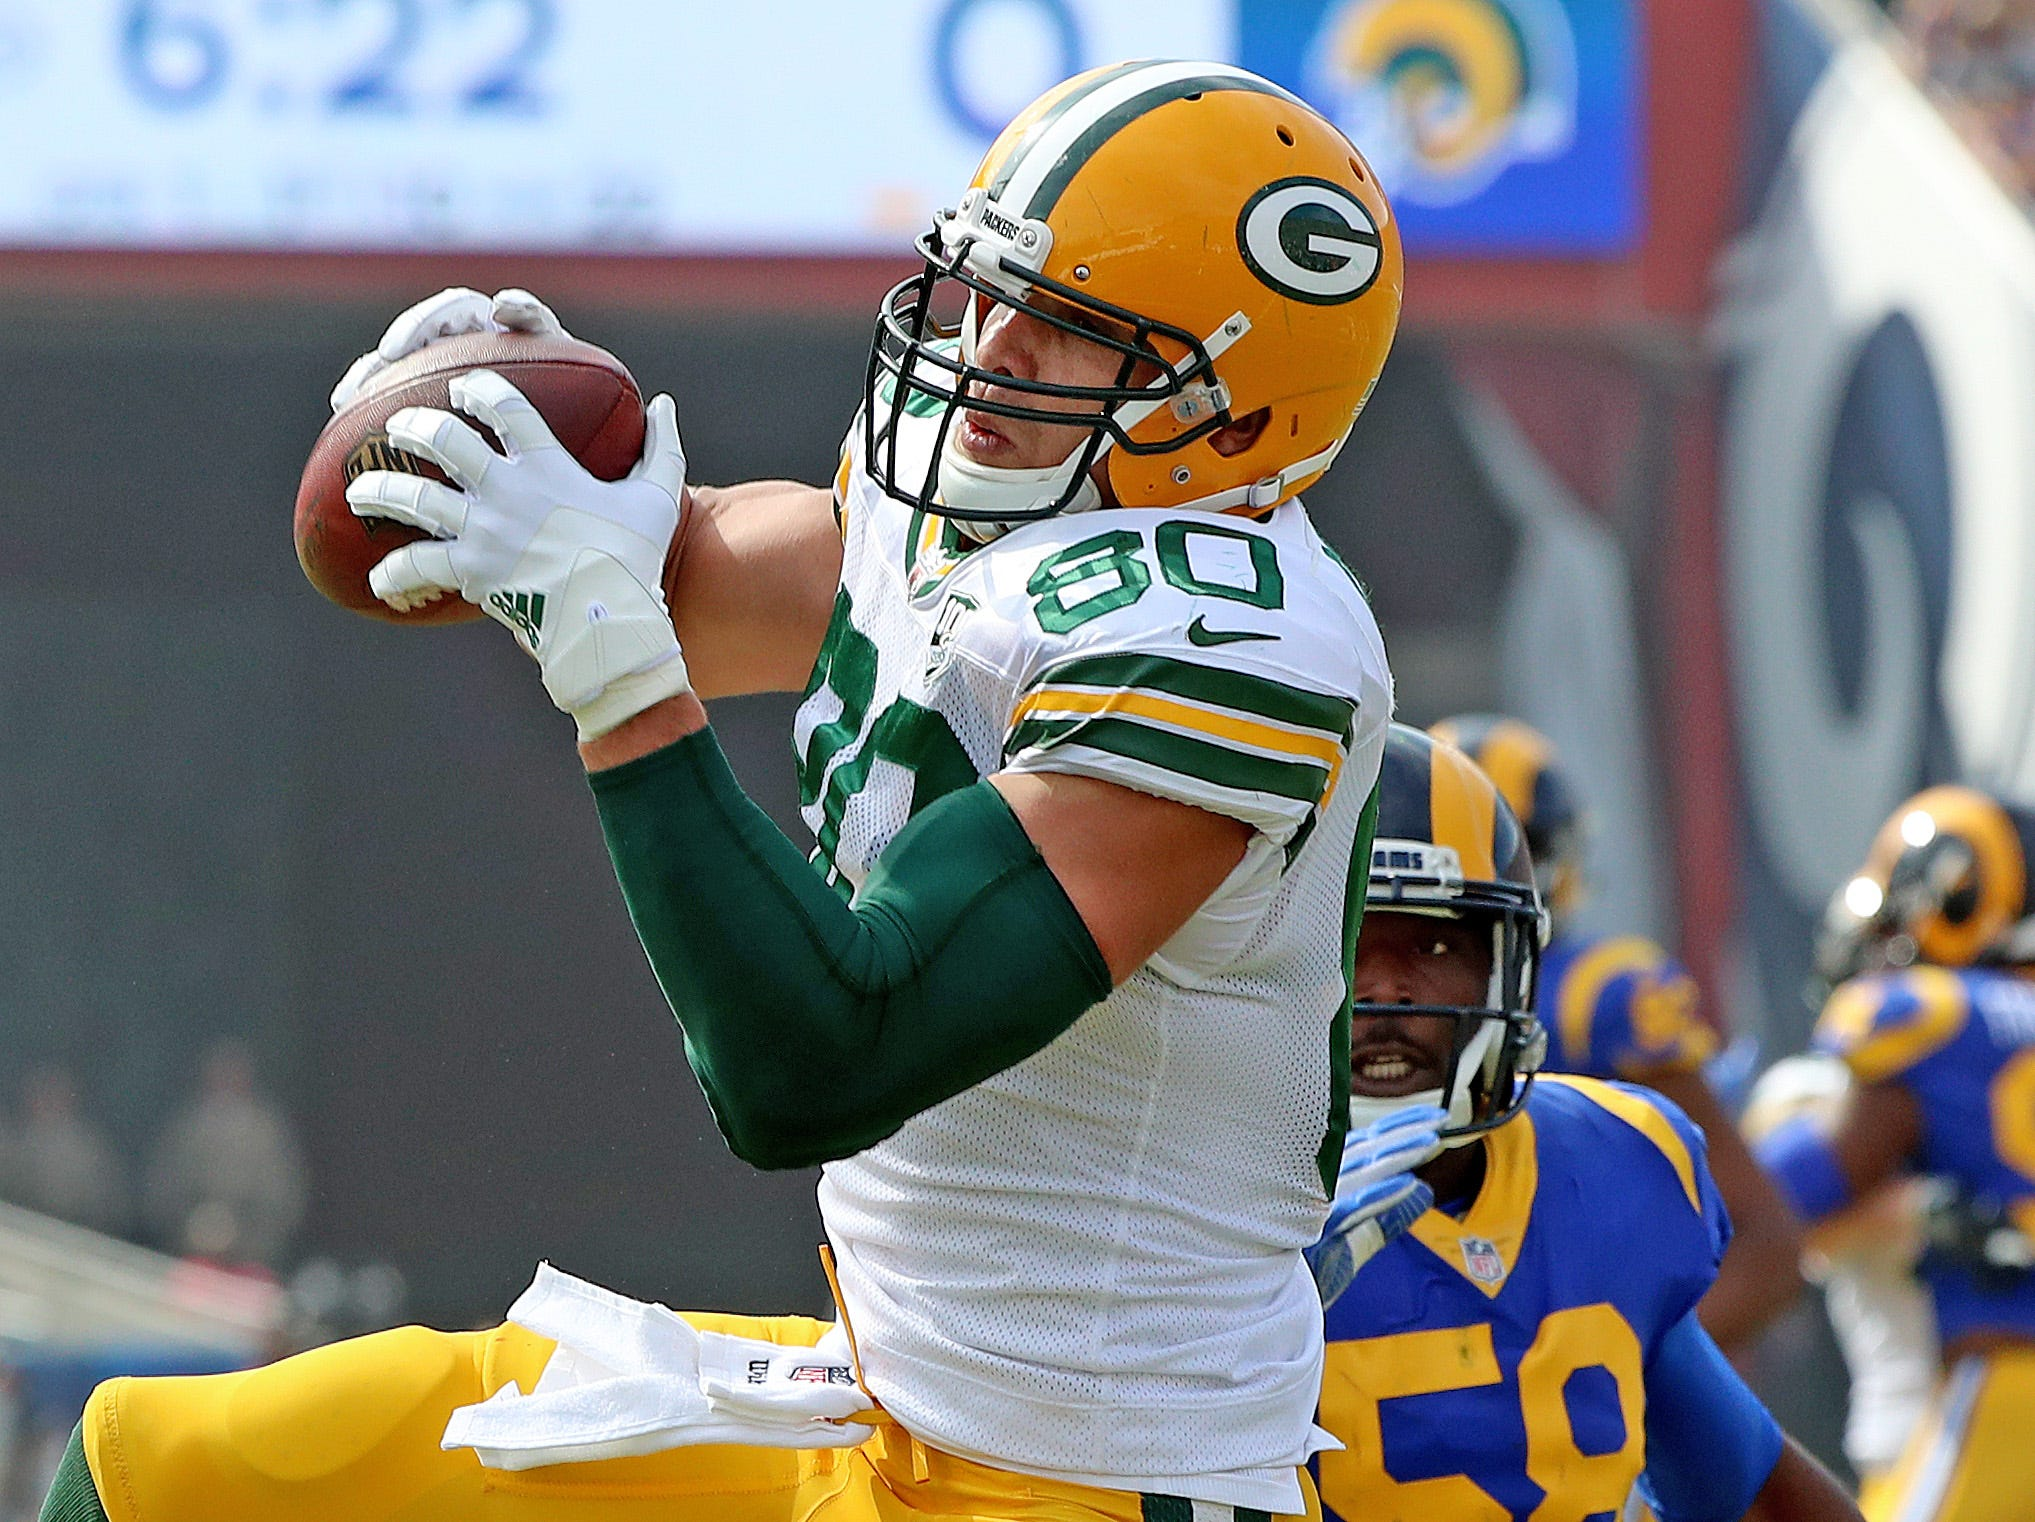 Green Bay Packers tight end Jimmy Graham (80) makes a catch against the LA Rams linebacker Cory Littleton (58) Sunday, October 28, 2018 at the Memorial Coliseum in Los Angeles.